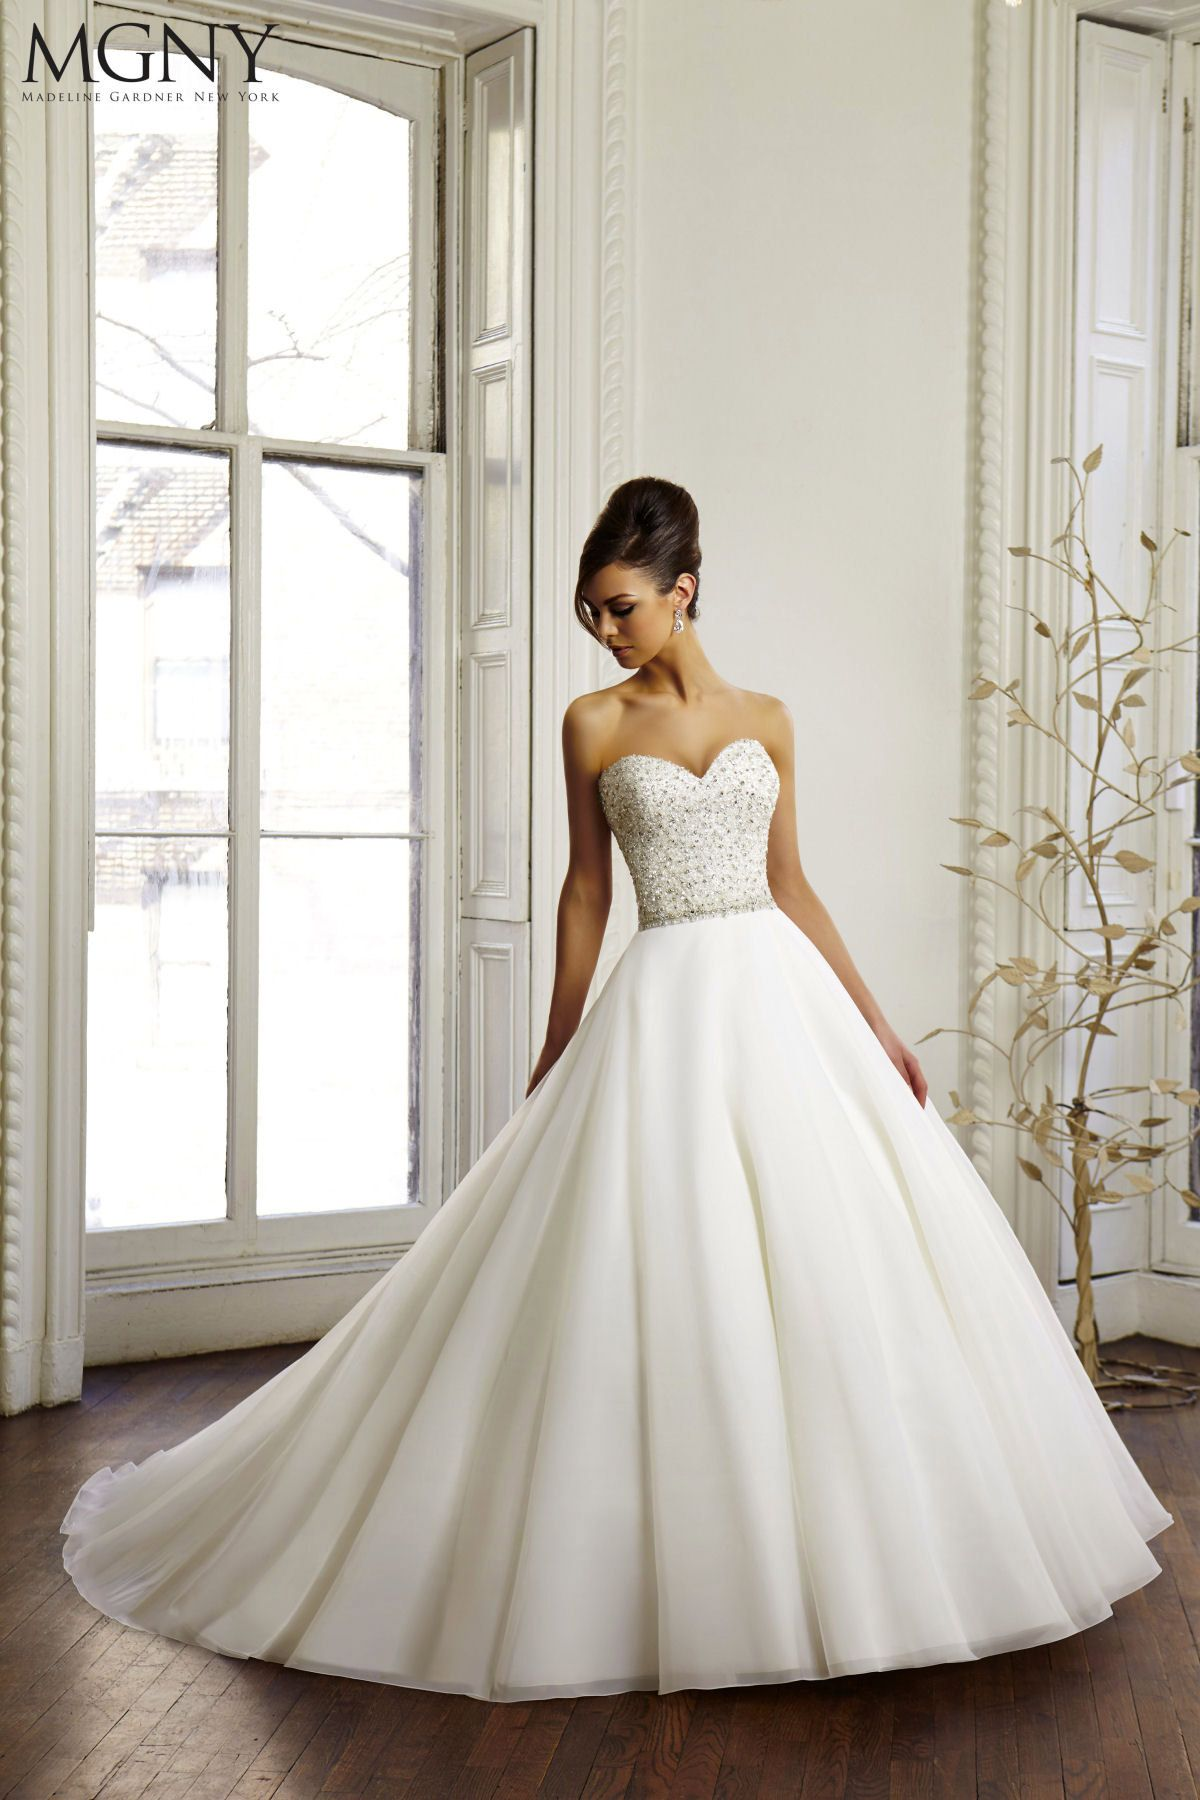 Photo of Wedding Dress Shapes and Styles for Brides with a Small Bust